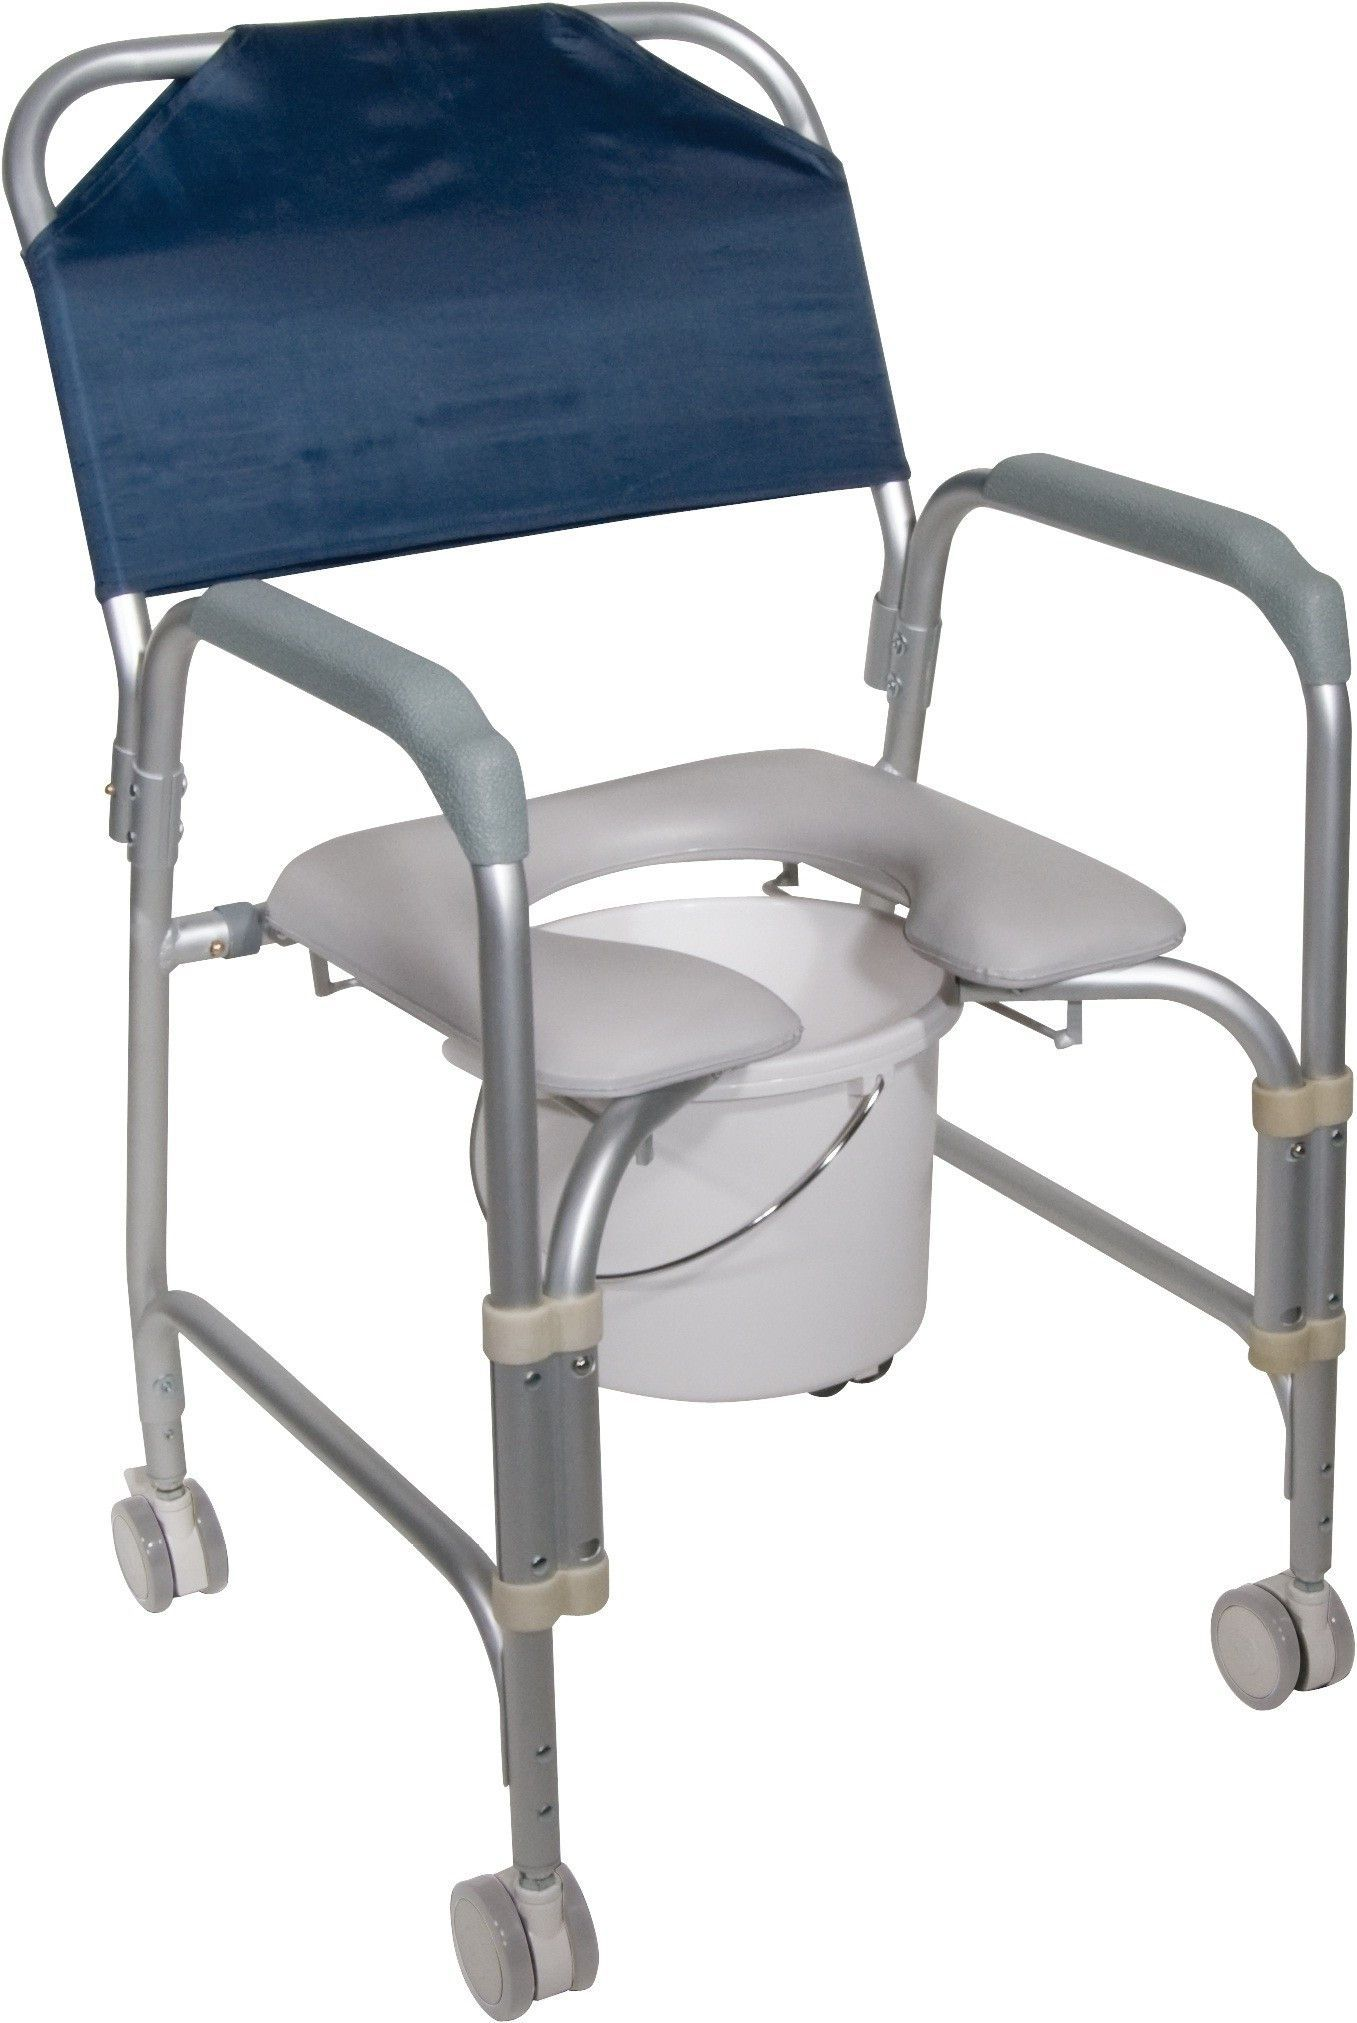 Aluminum Shower Chair and Commode with Casters | wheelchair ...